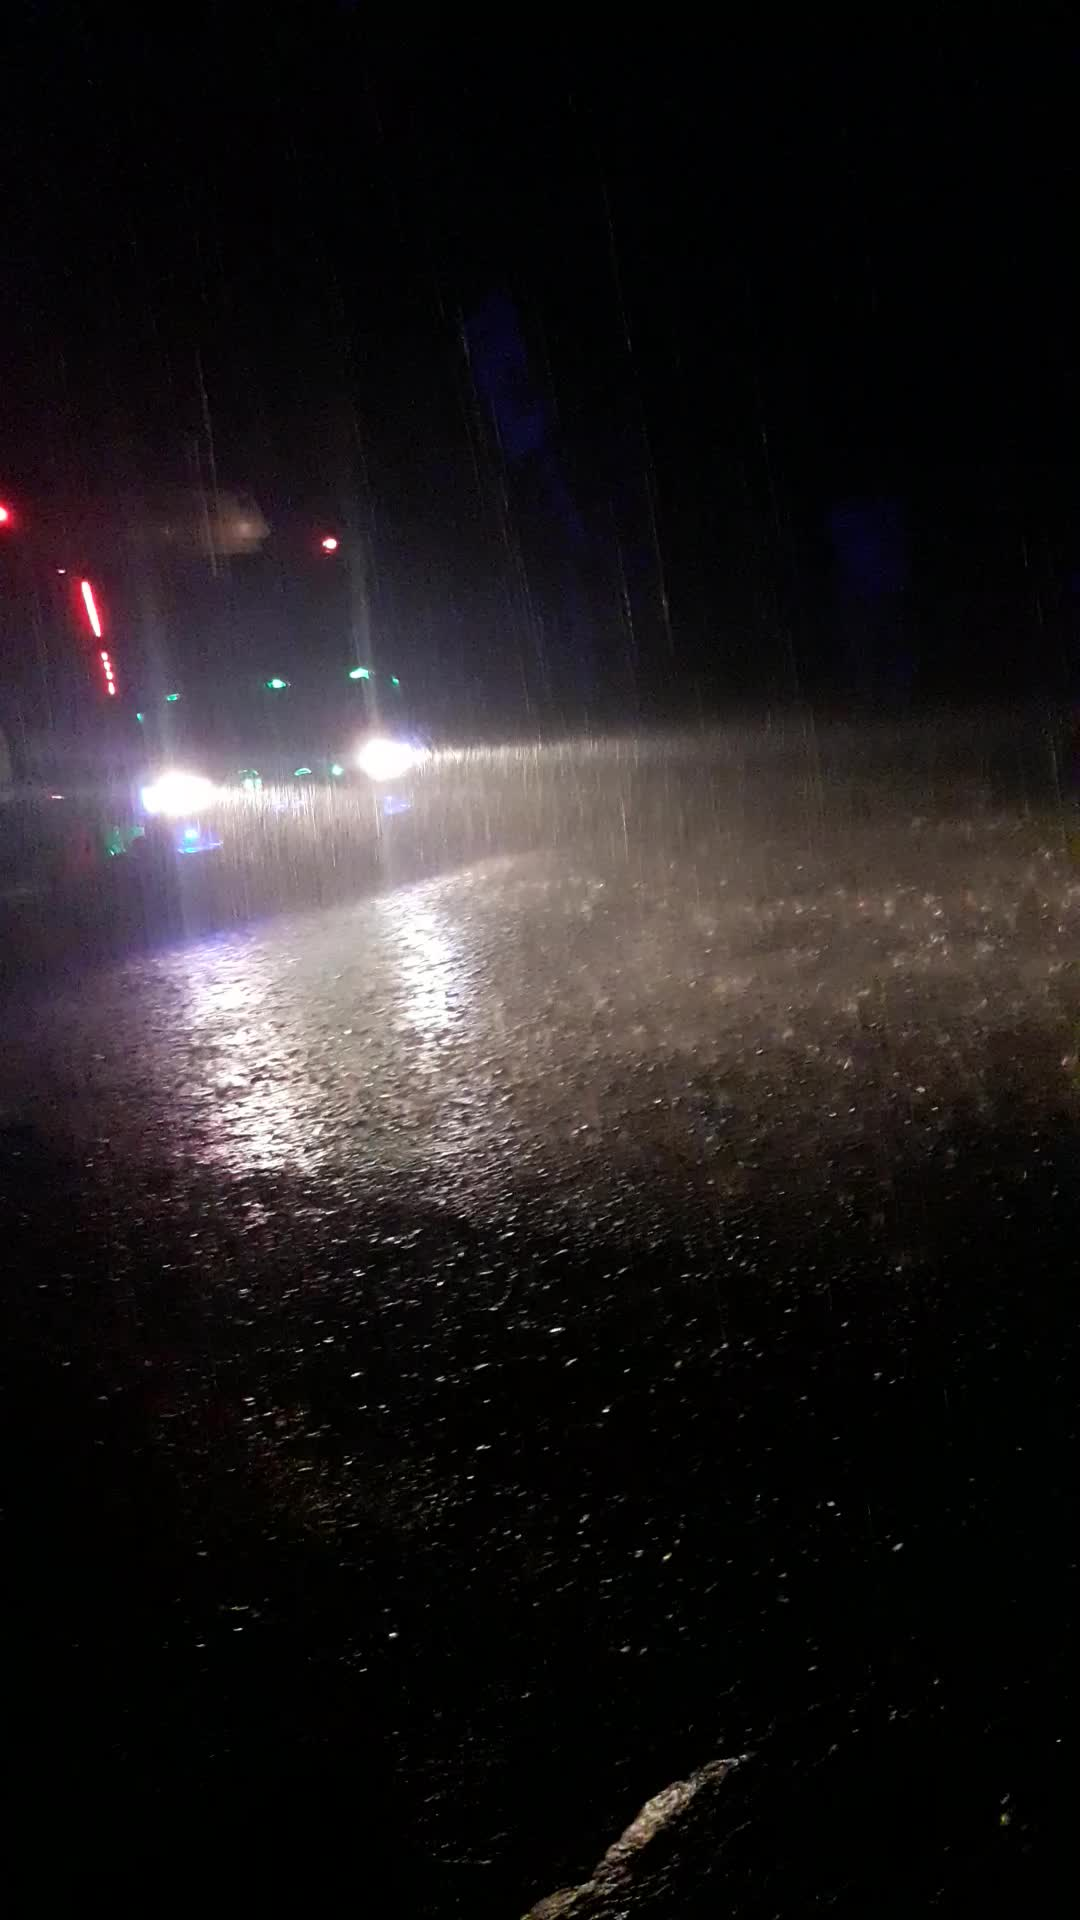 It has been raining in Khulna since evening. The video of this rain has been made from Khulna Main Road in the dark of night